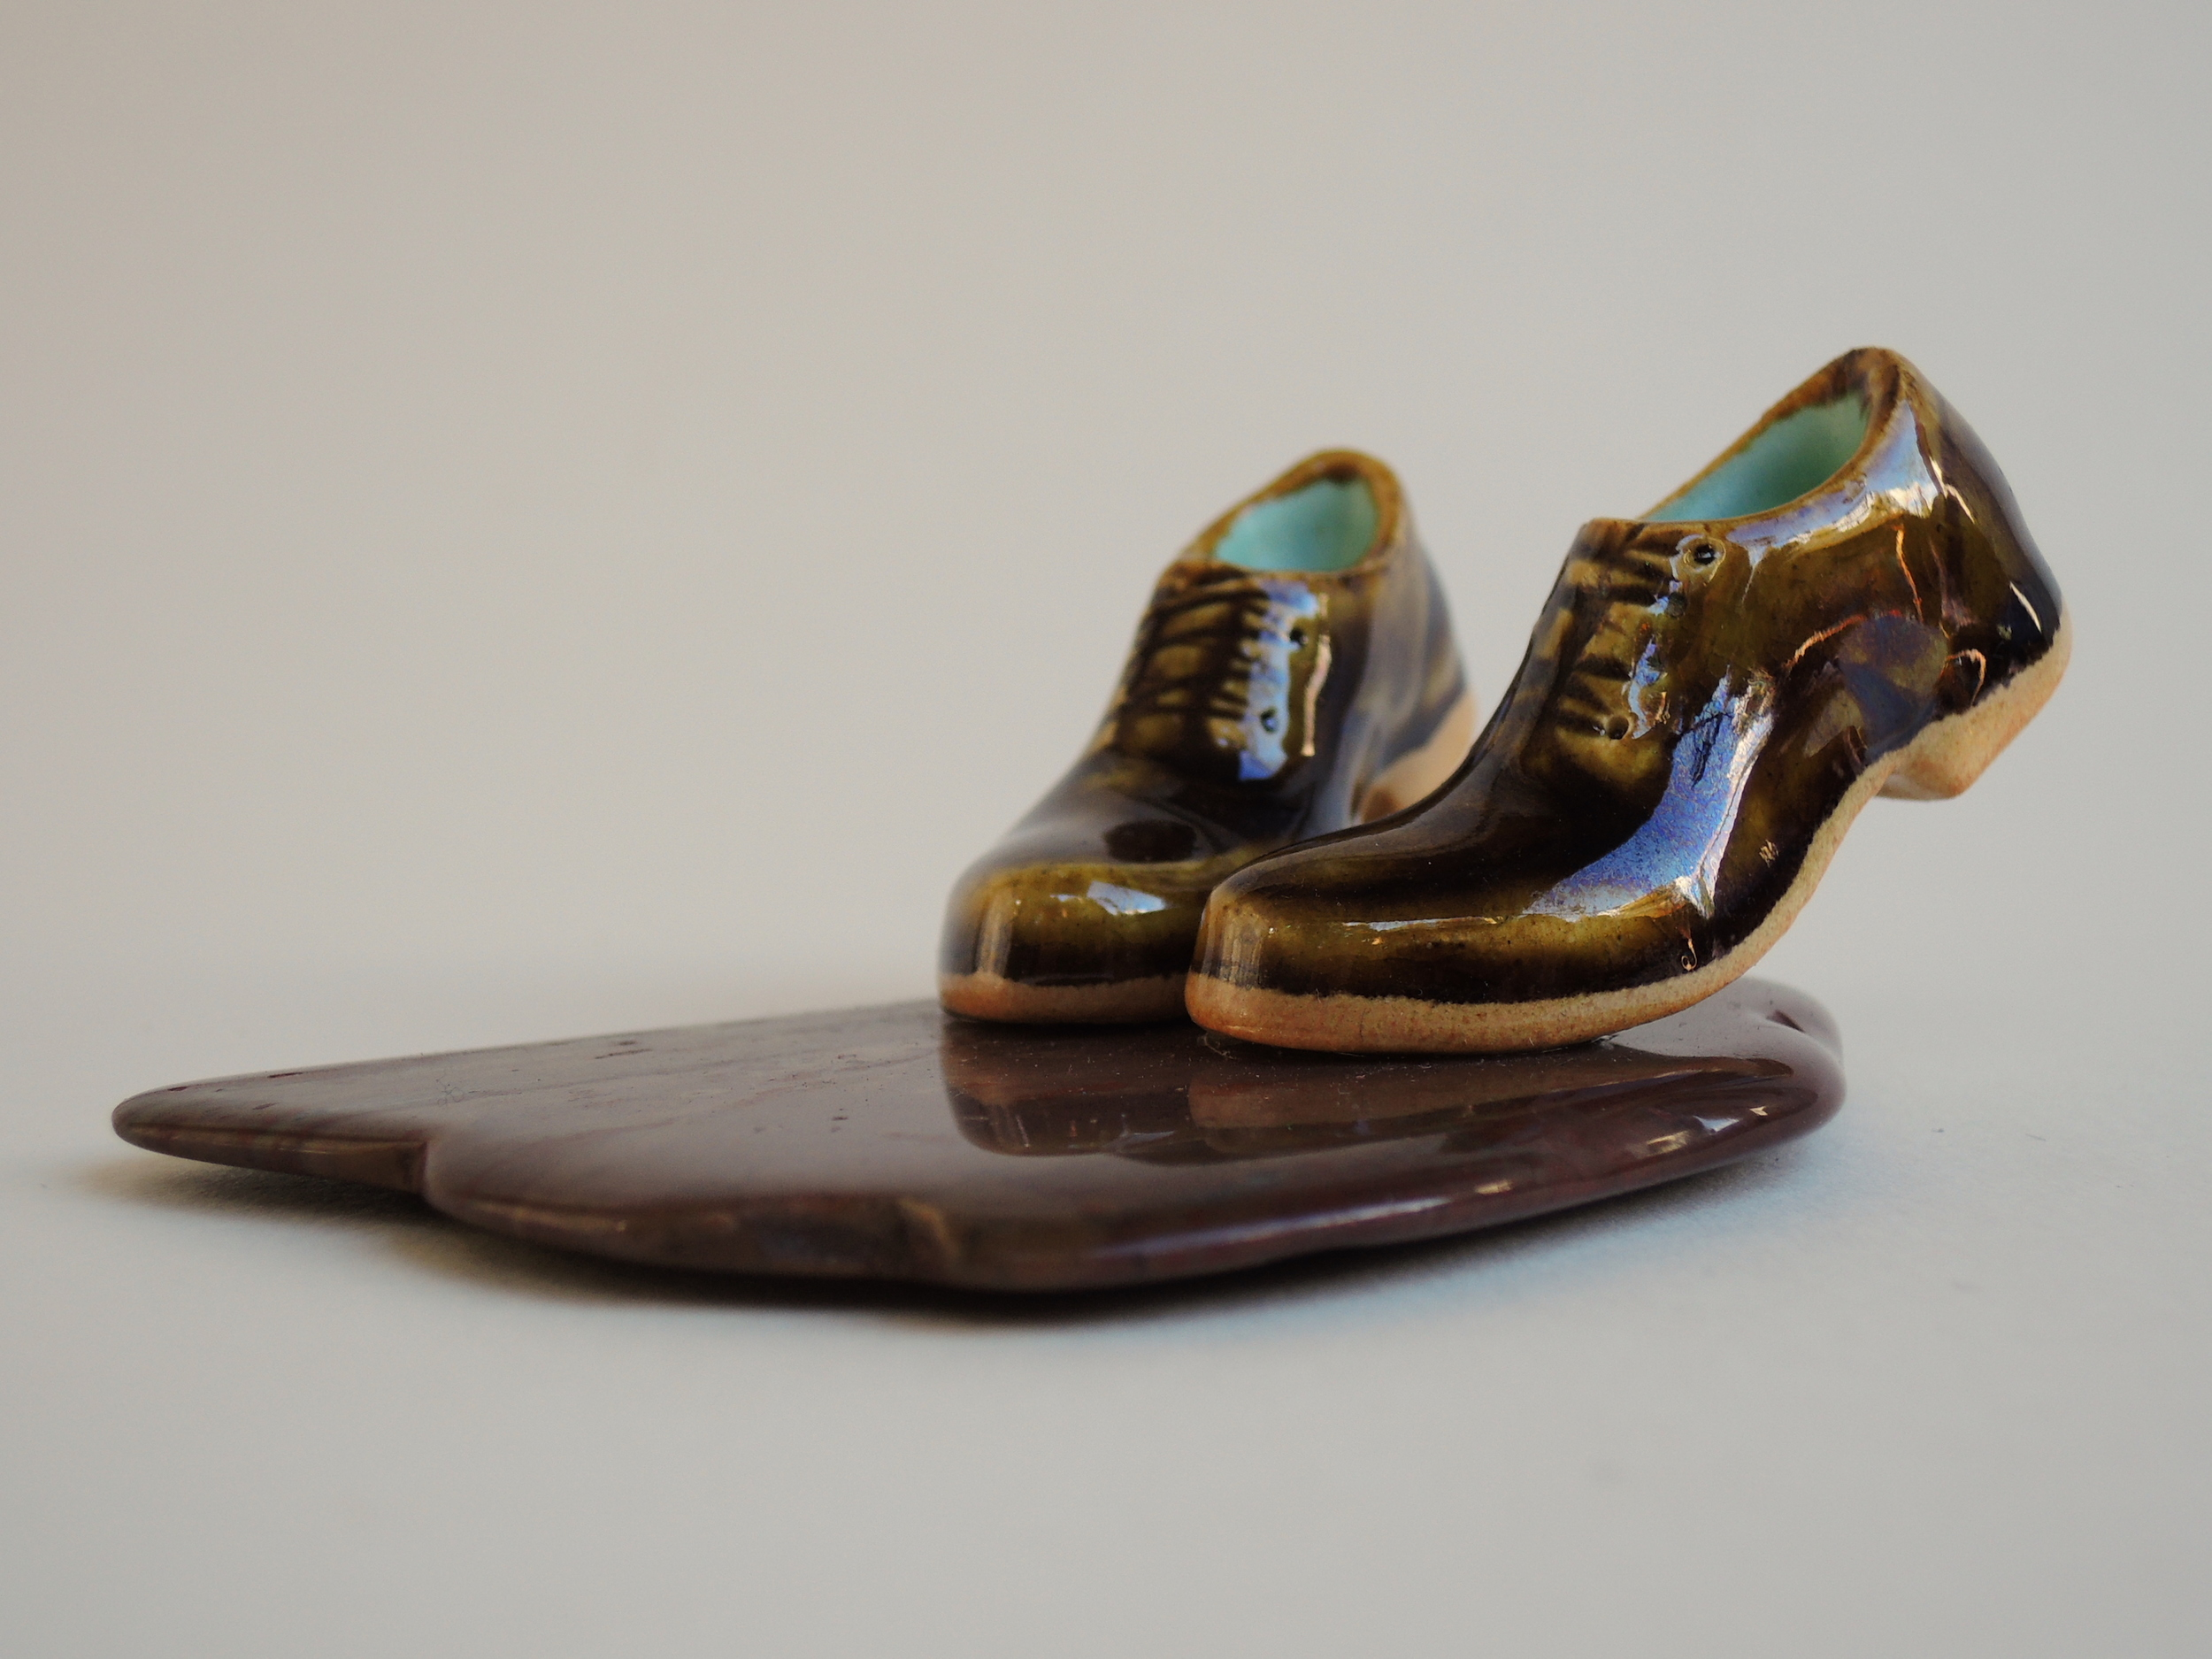 Carmen Lang, Stepping stone ,Stoneware 1 ¼ x 2 ¼ x 4 inches,2015